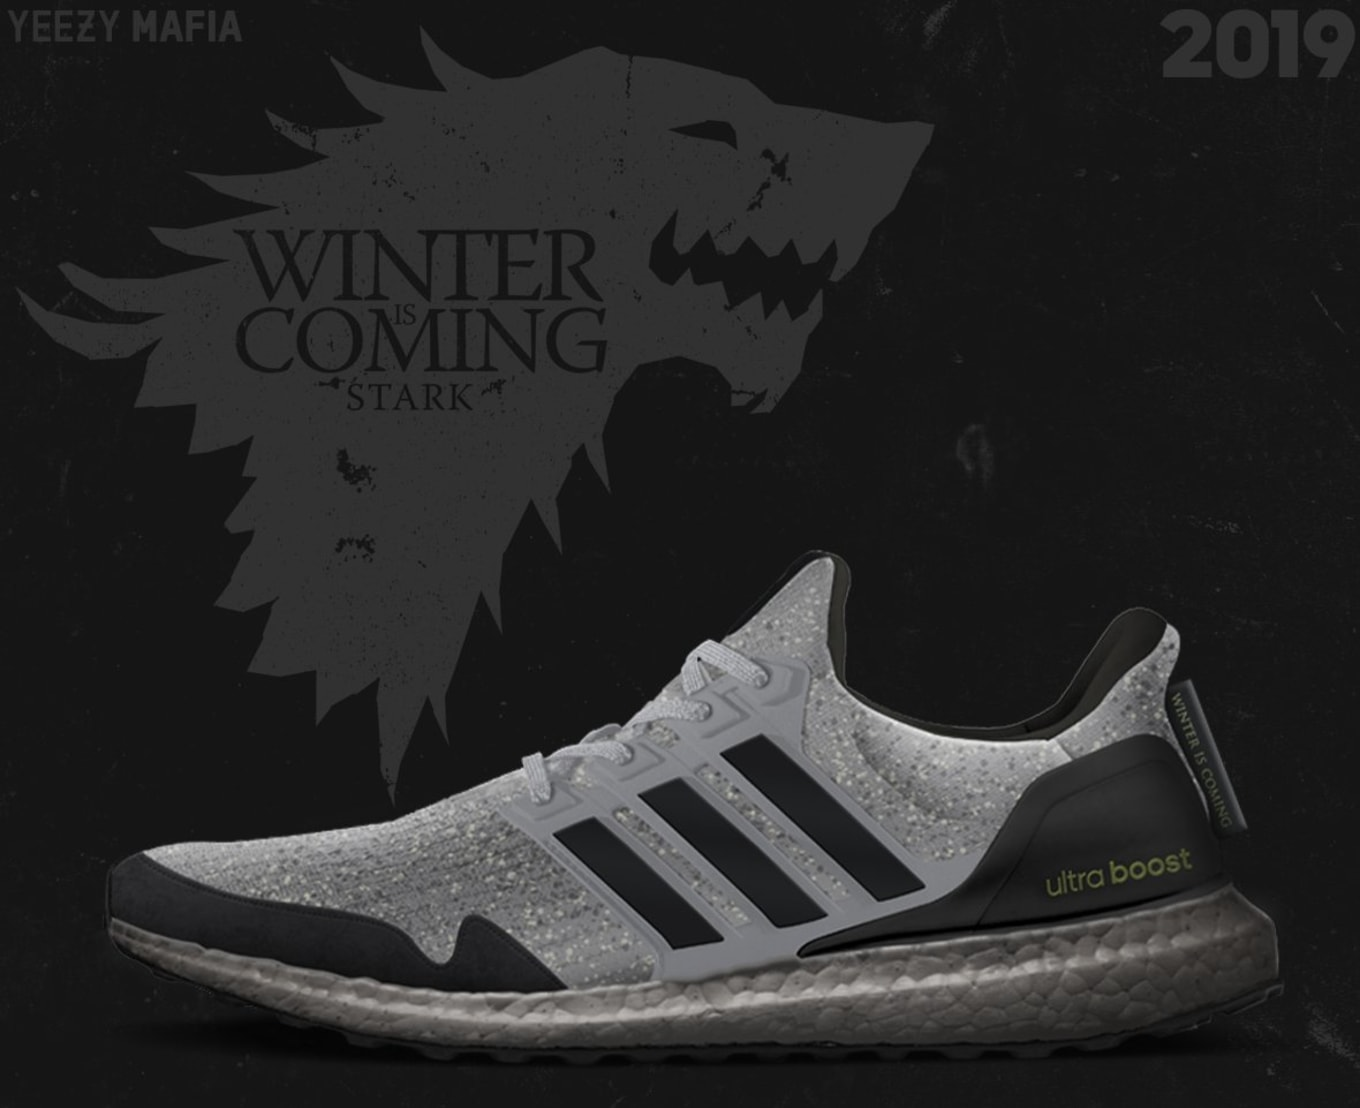 f00c8aecfa999 Game of Thrones x Adidas Ultra Boost Sneaker Collaboration 2019 ...